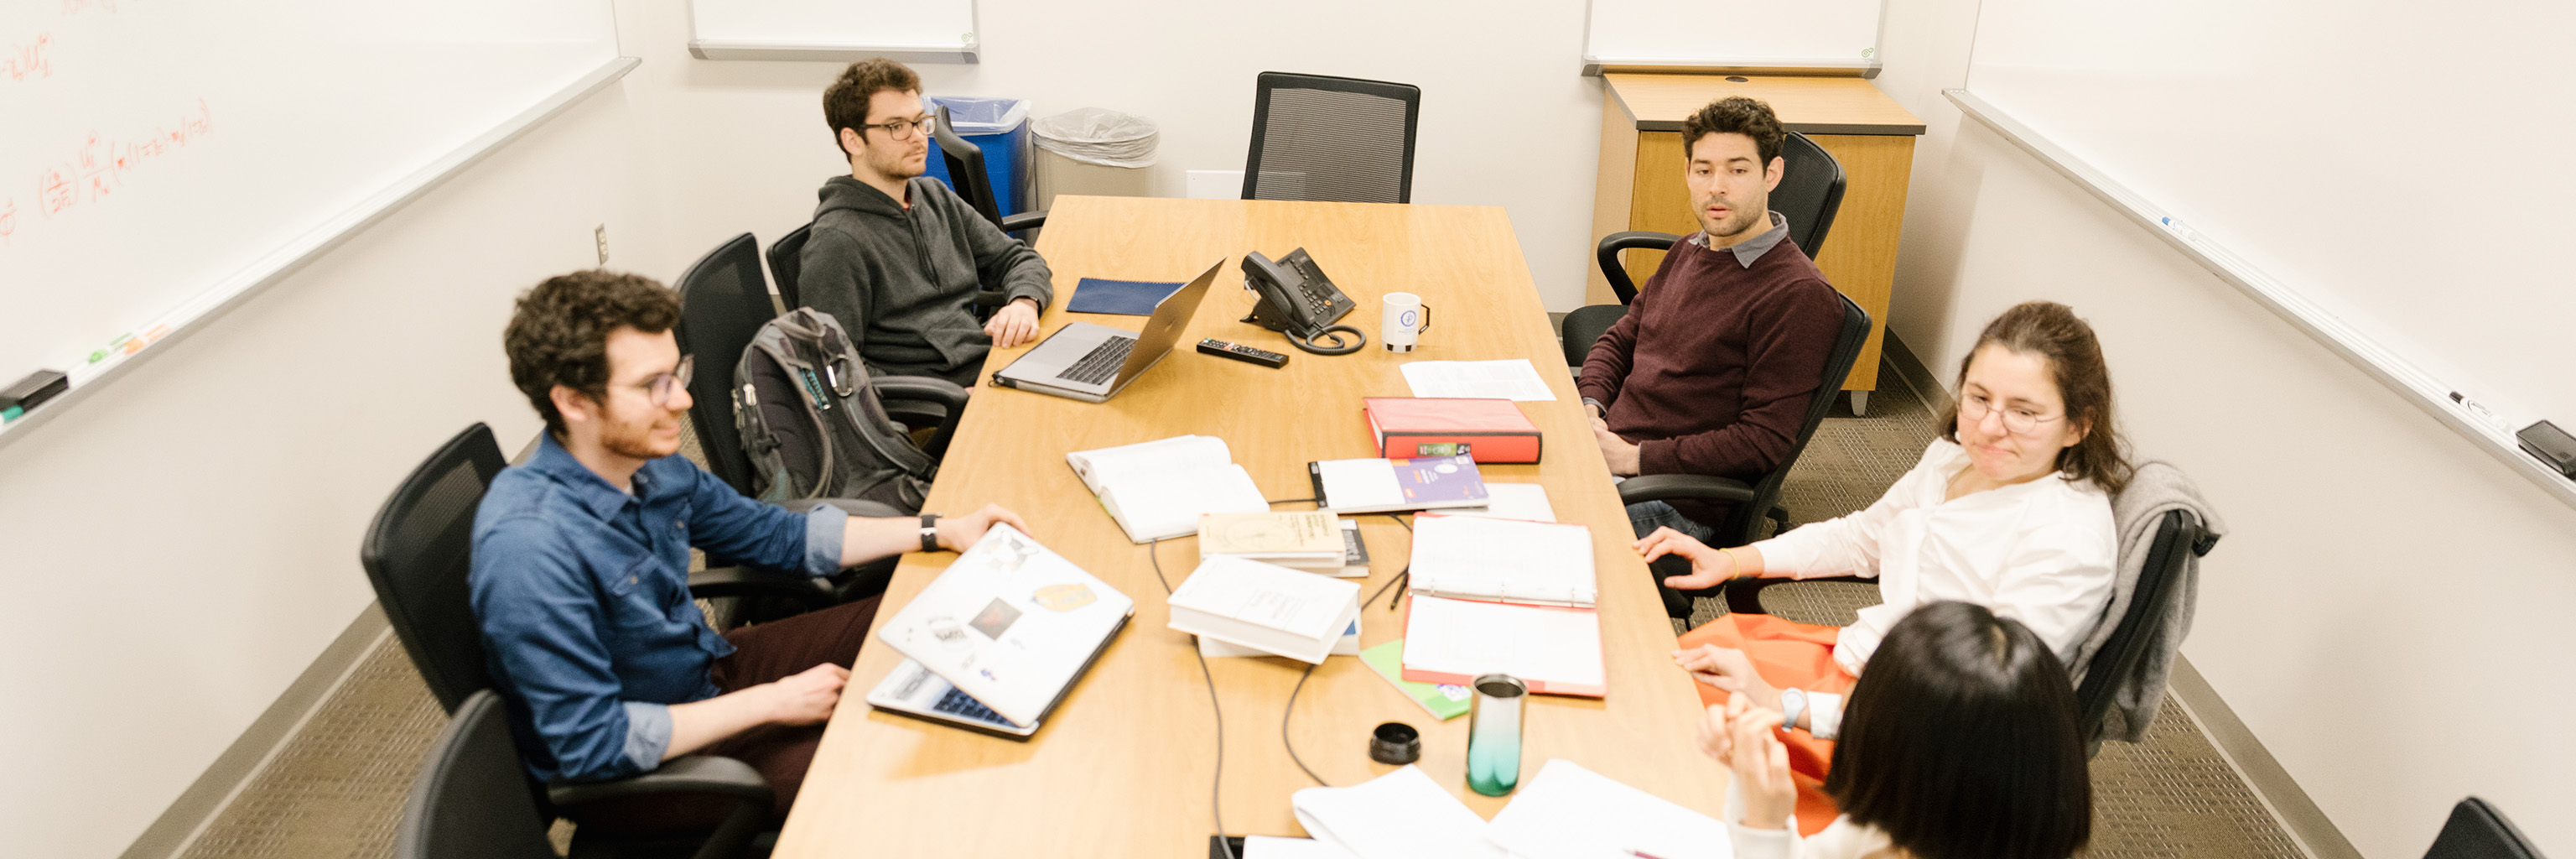 Graduate students convened around a conference table